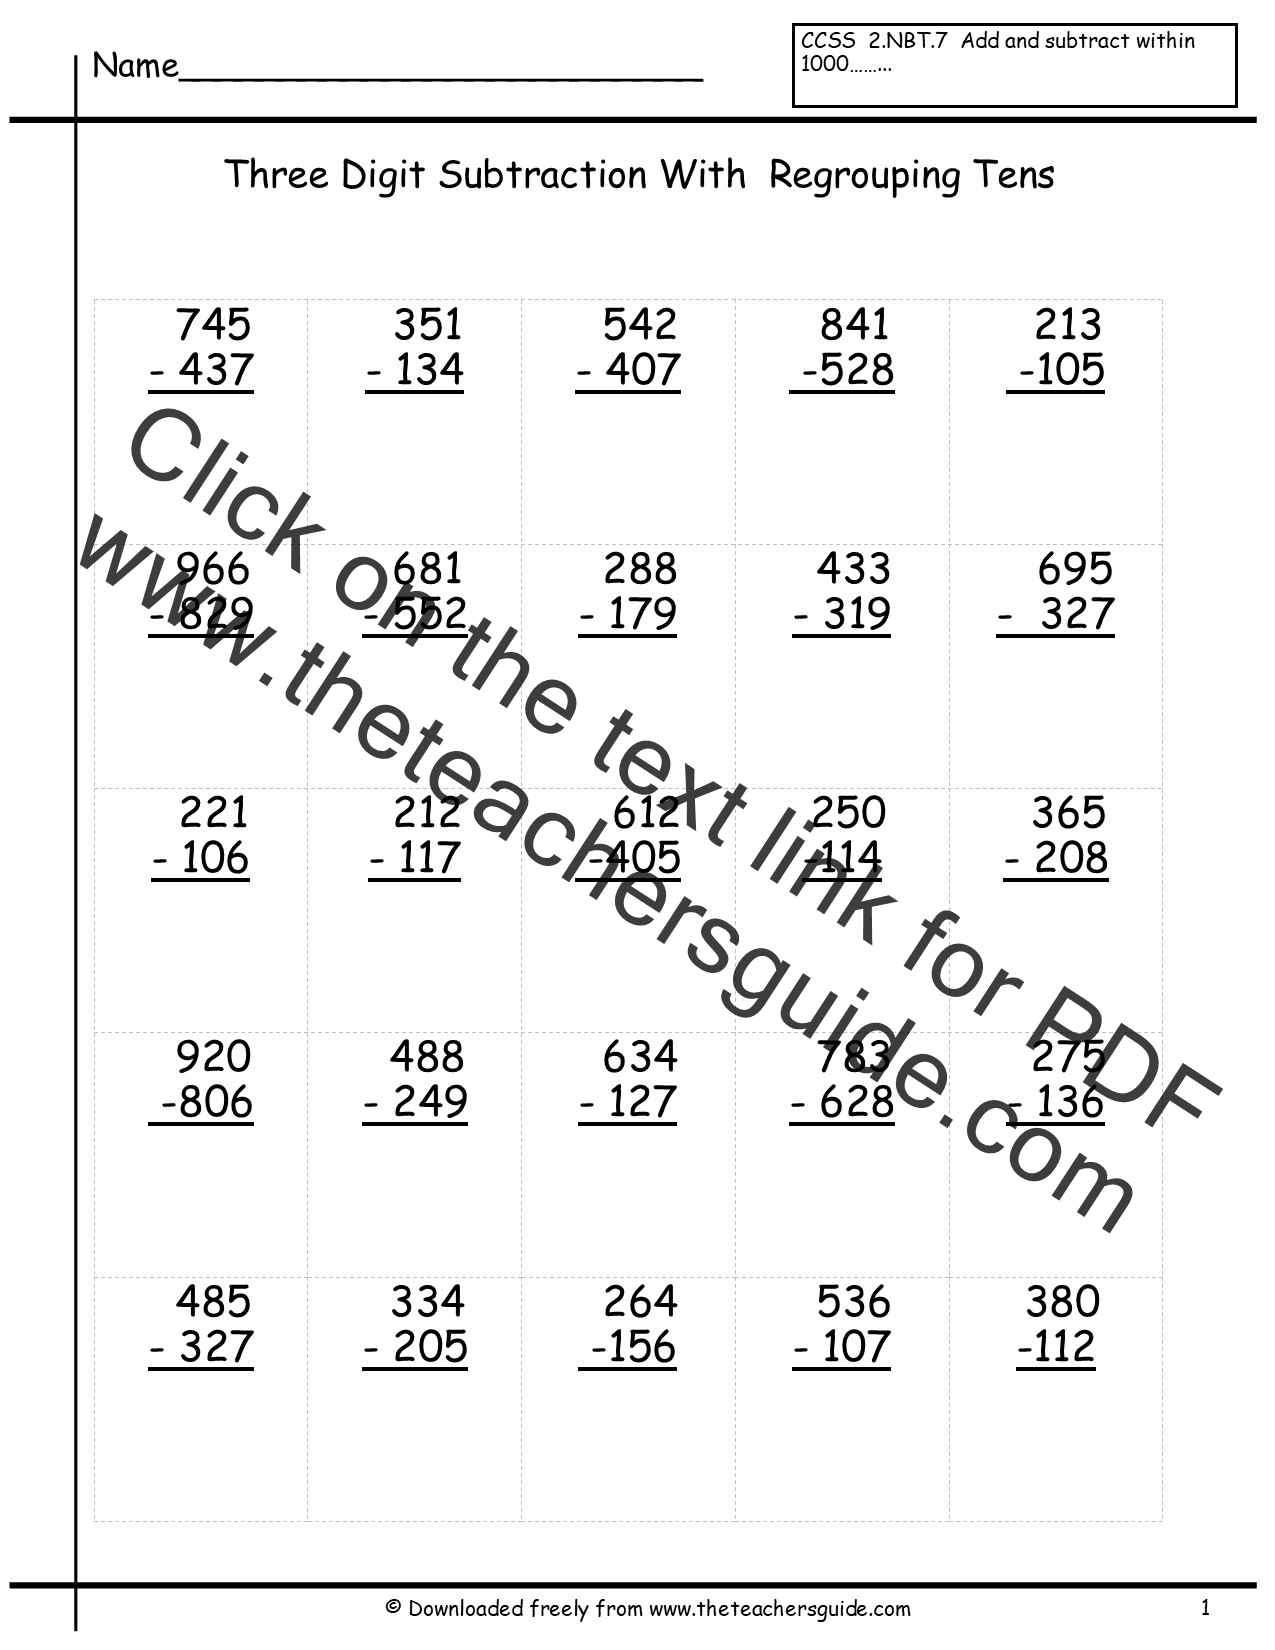 Three Digit Subtraction Worksheets from The Teacher's Guide